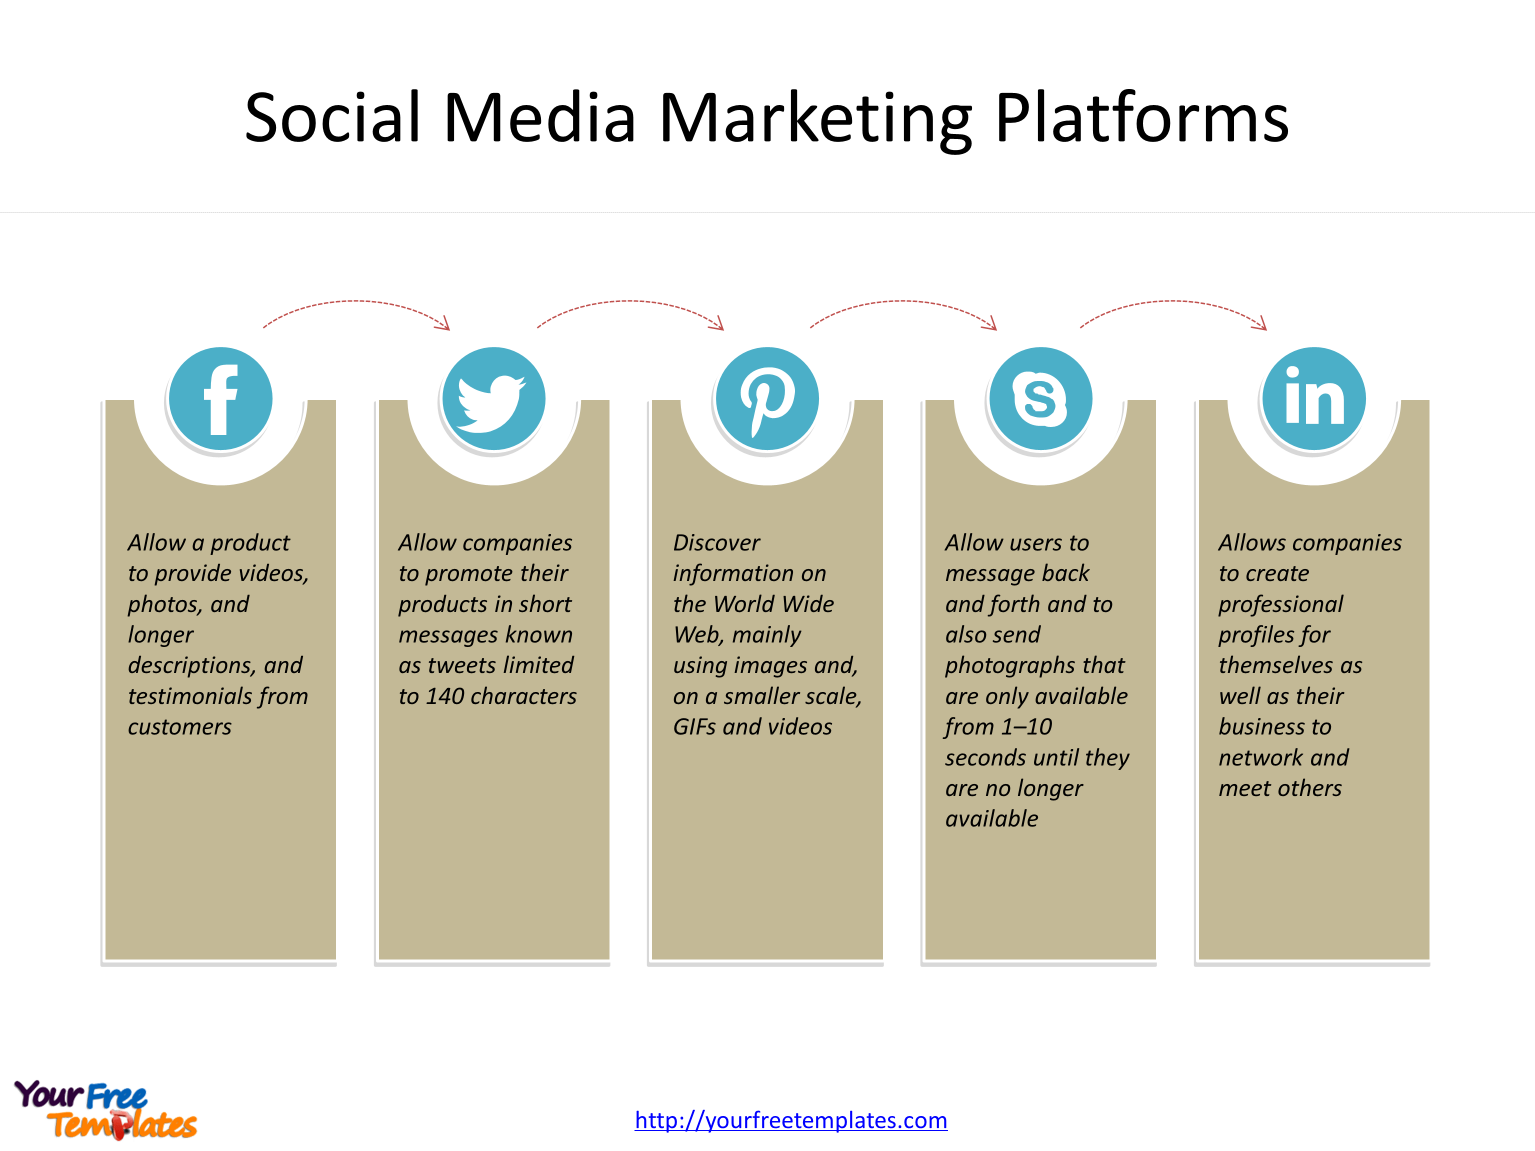 Social media marketing diagram with platforms